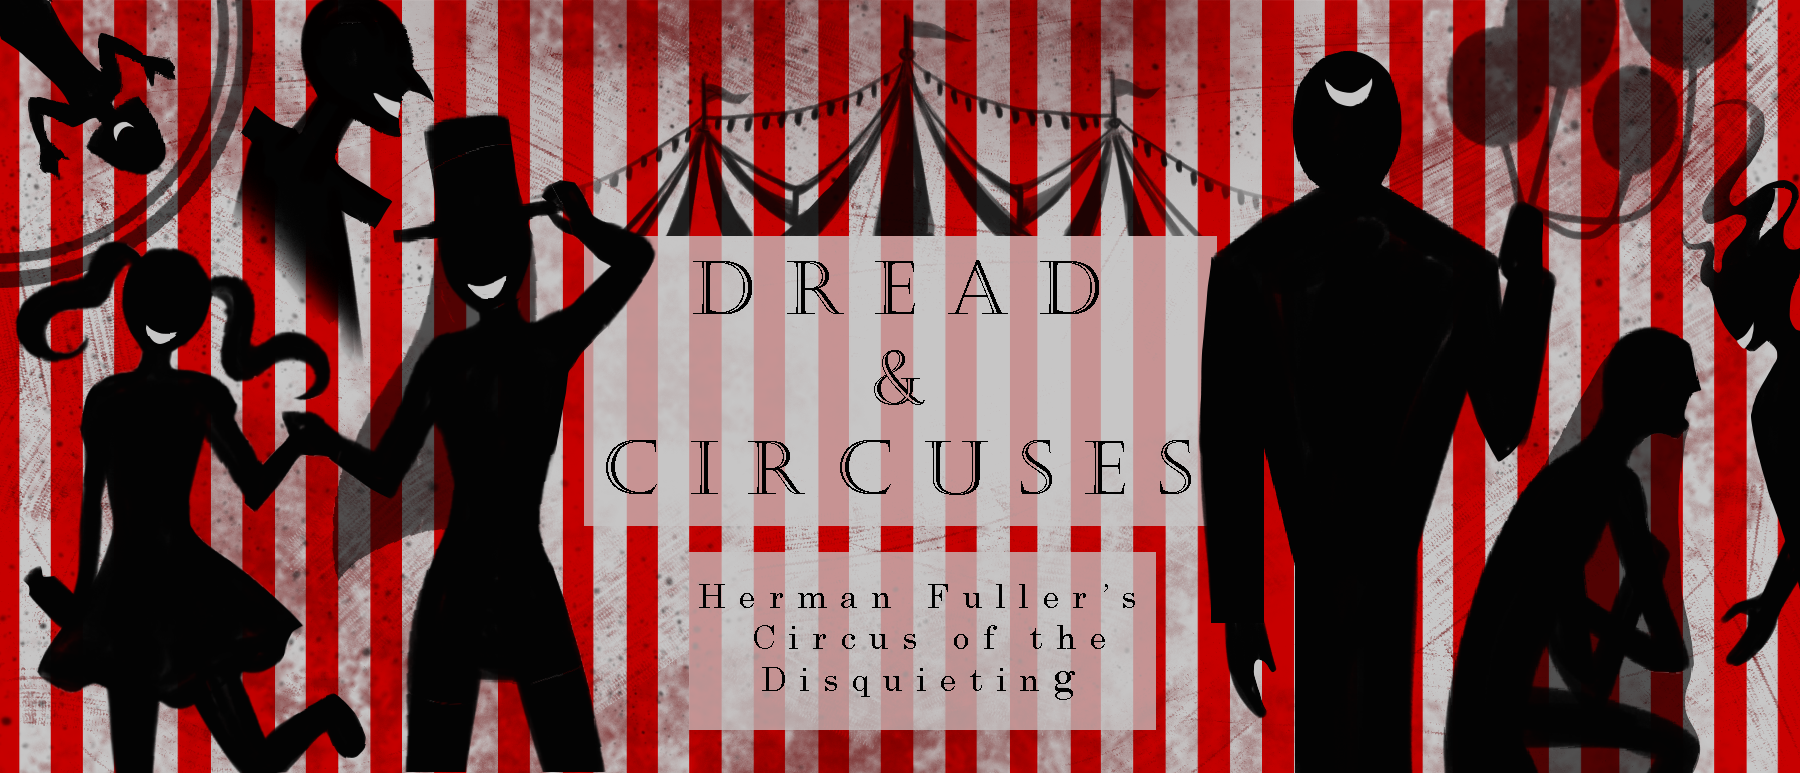 circus_banner_by_zhange000-dc0jnc3.png